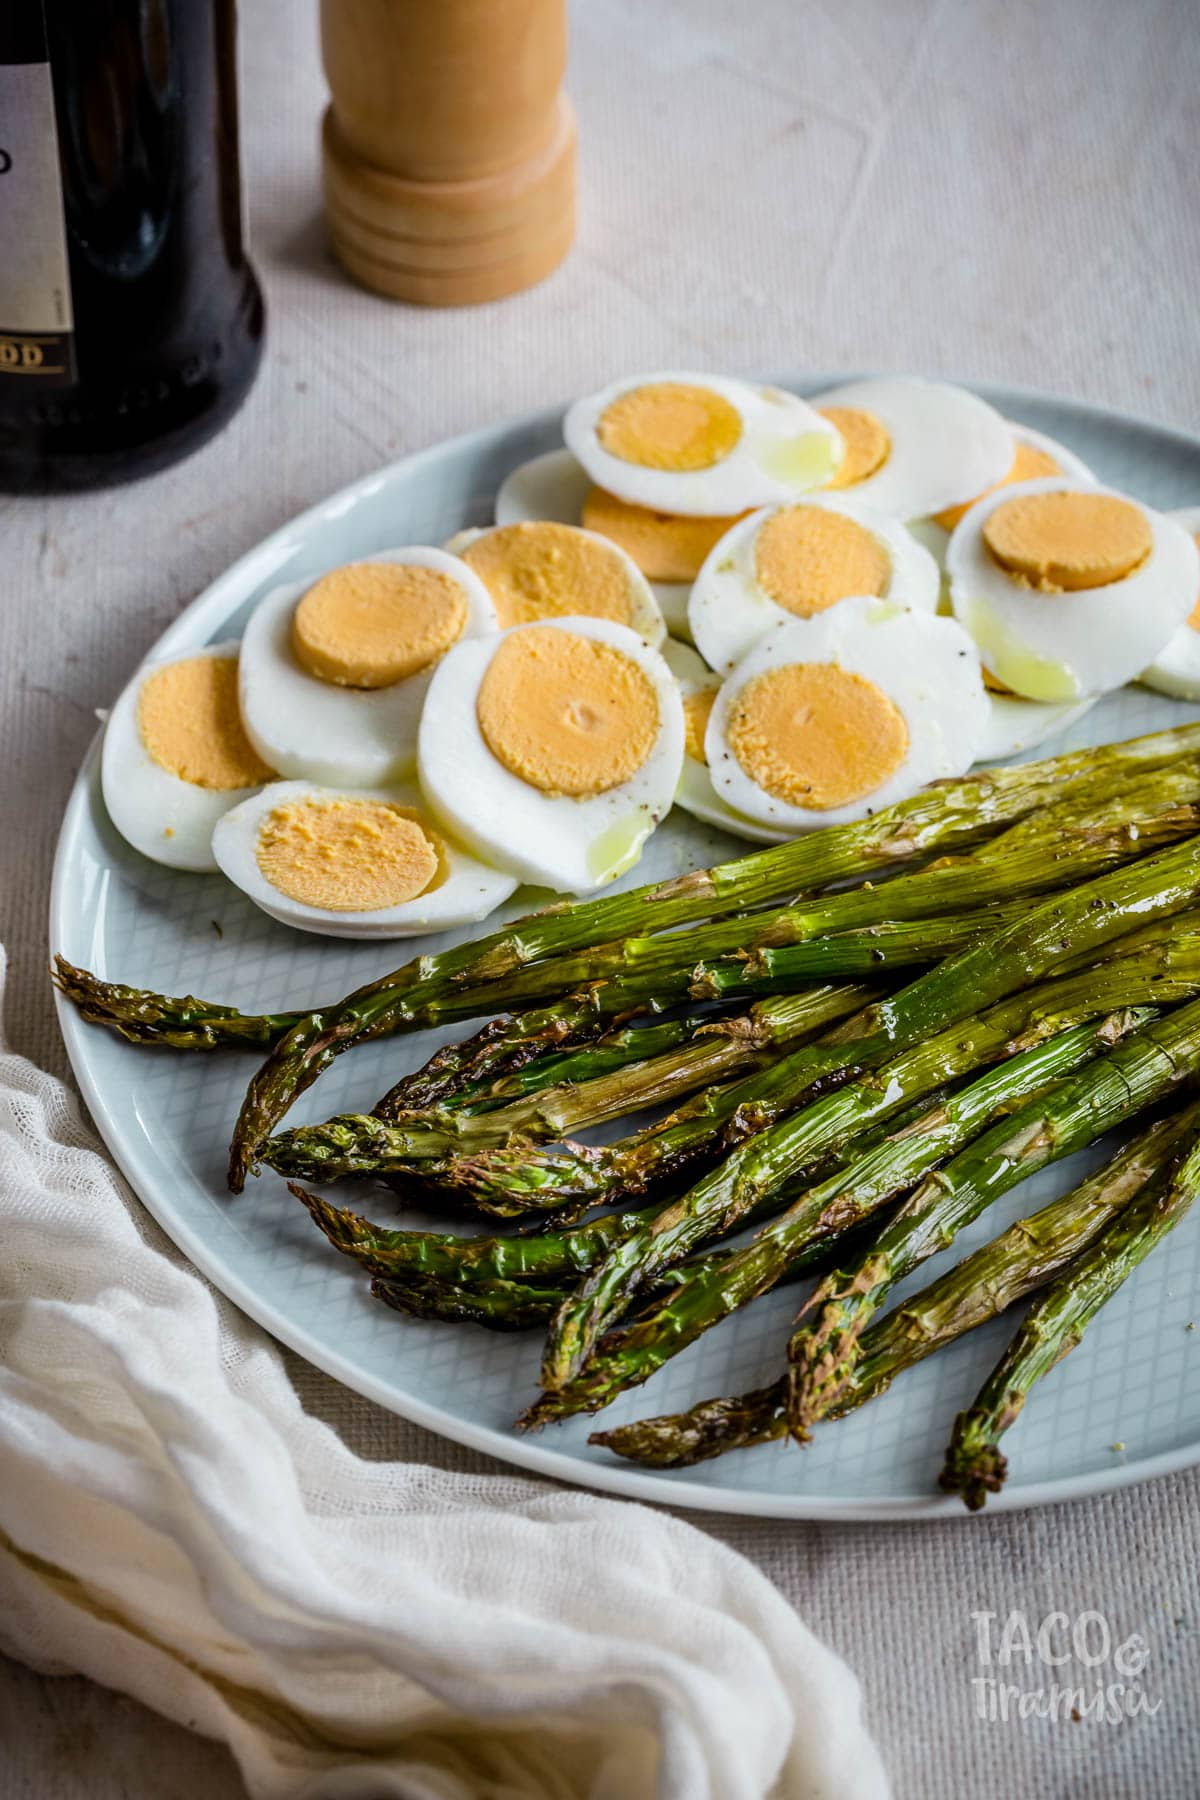 roasted asparagus and eggs on a plate, close up photo